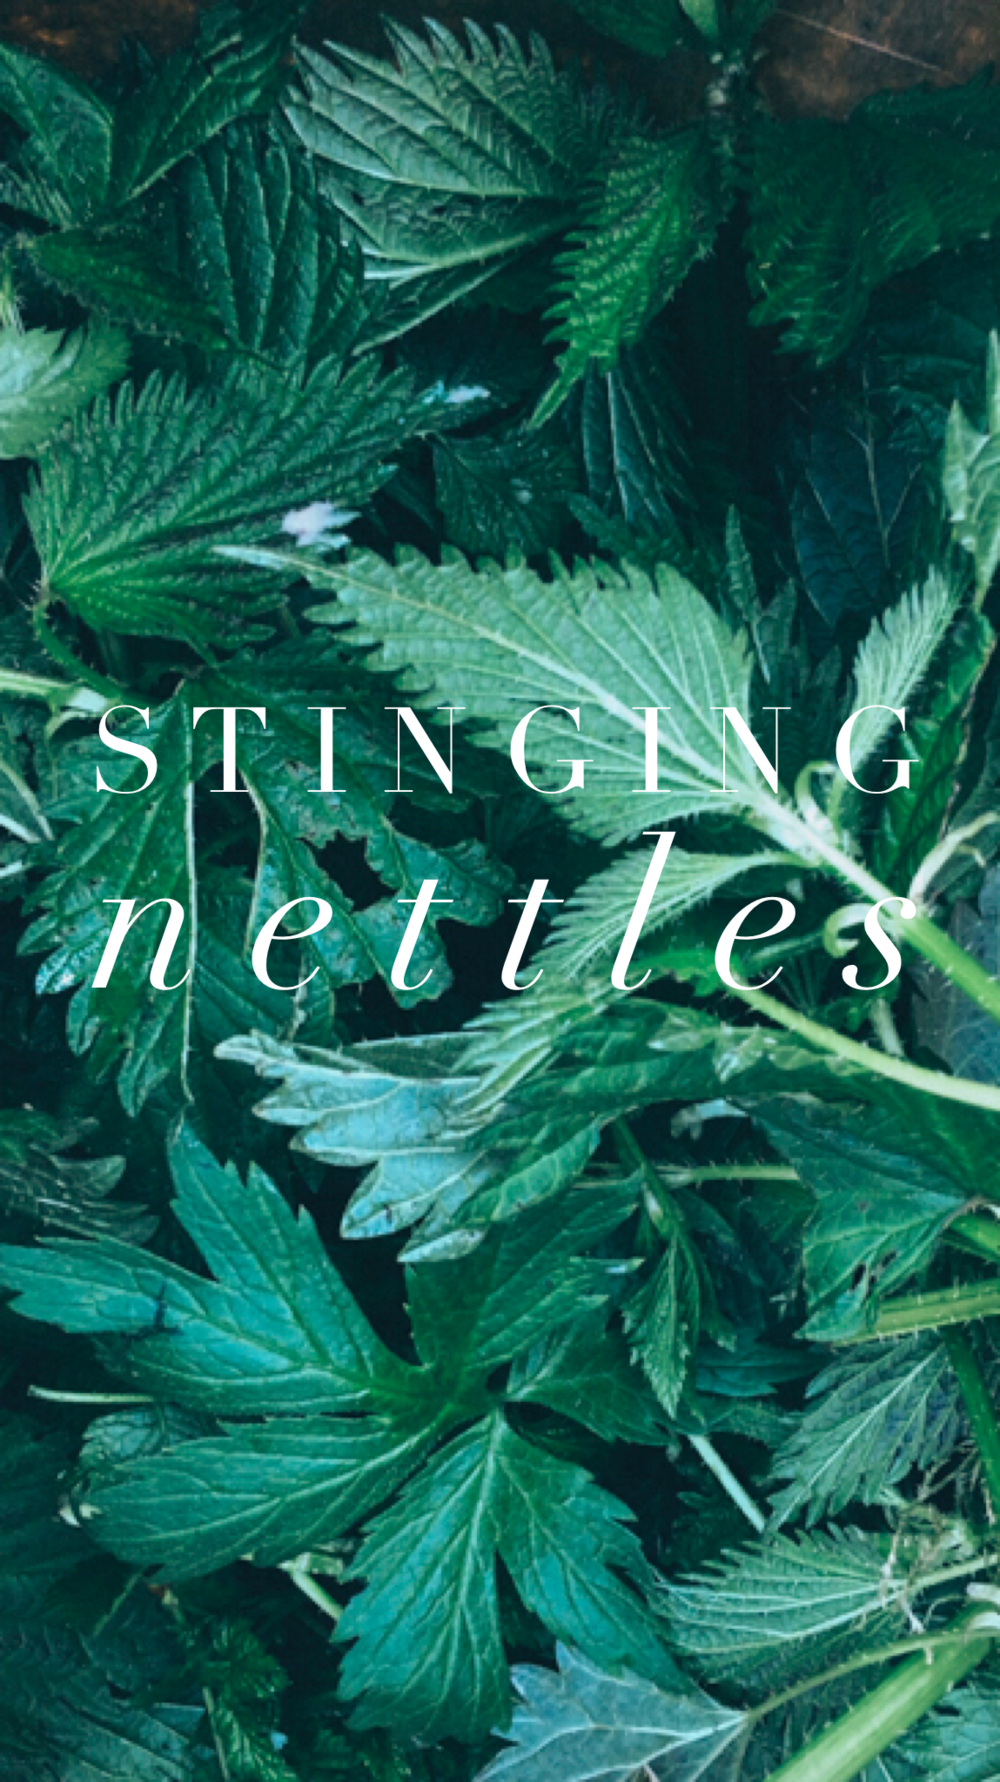 Gathering stinging nettles and other things to cook